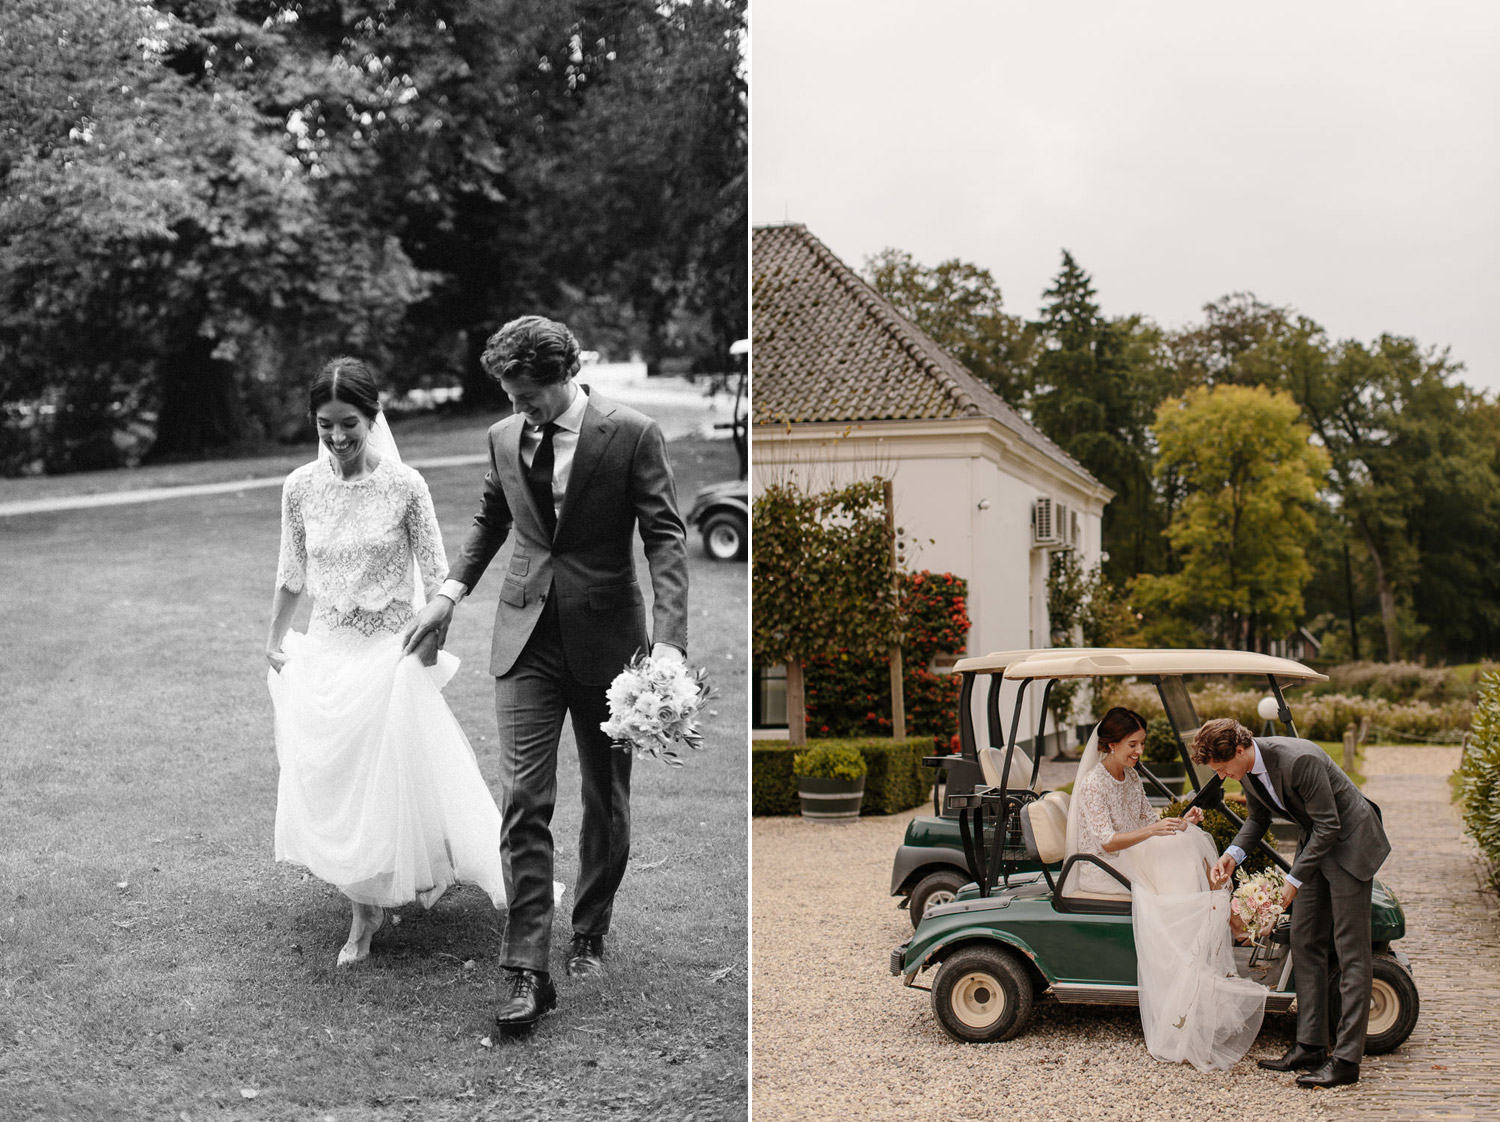 Happy Bride and Groom at Kasteel Engelenburg Wedding